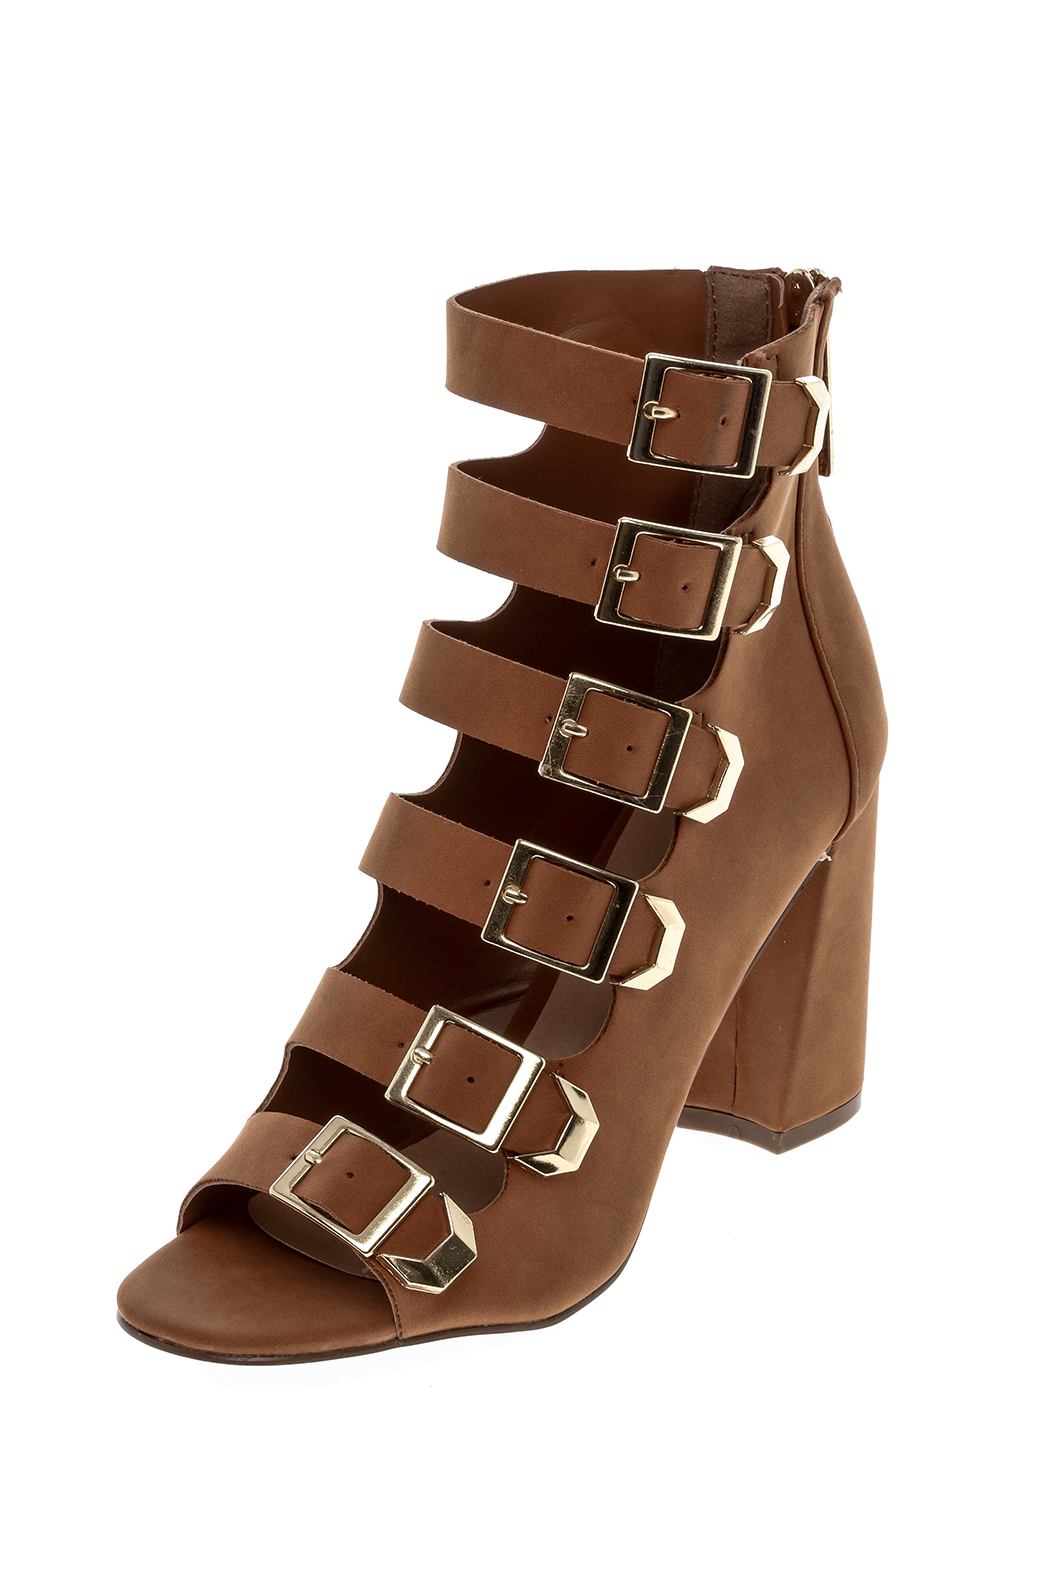 Breckelle's Tan Buckle Shoes - Main Image